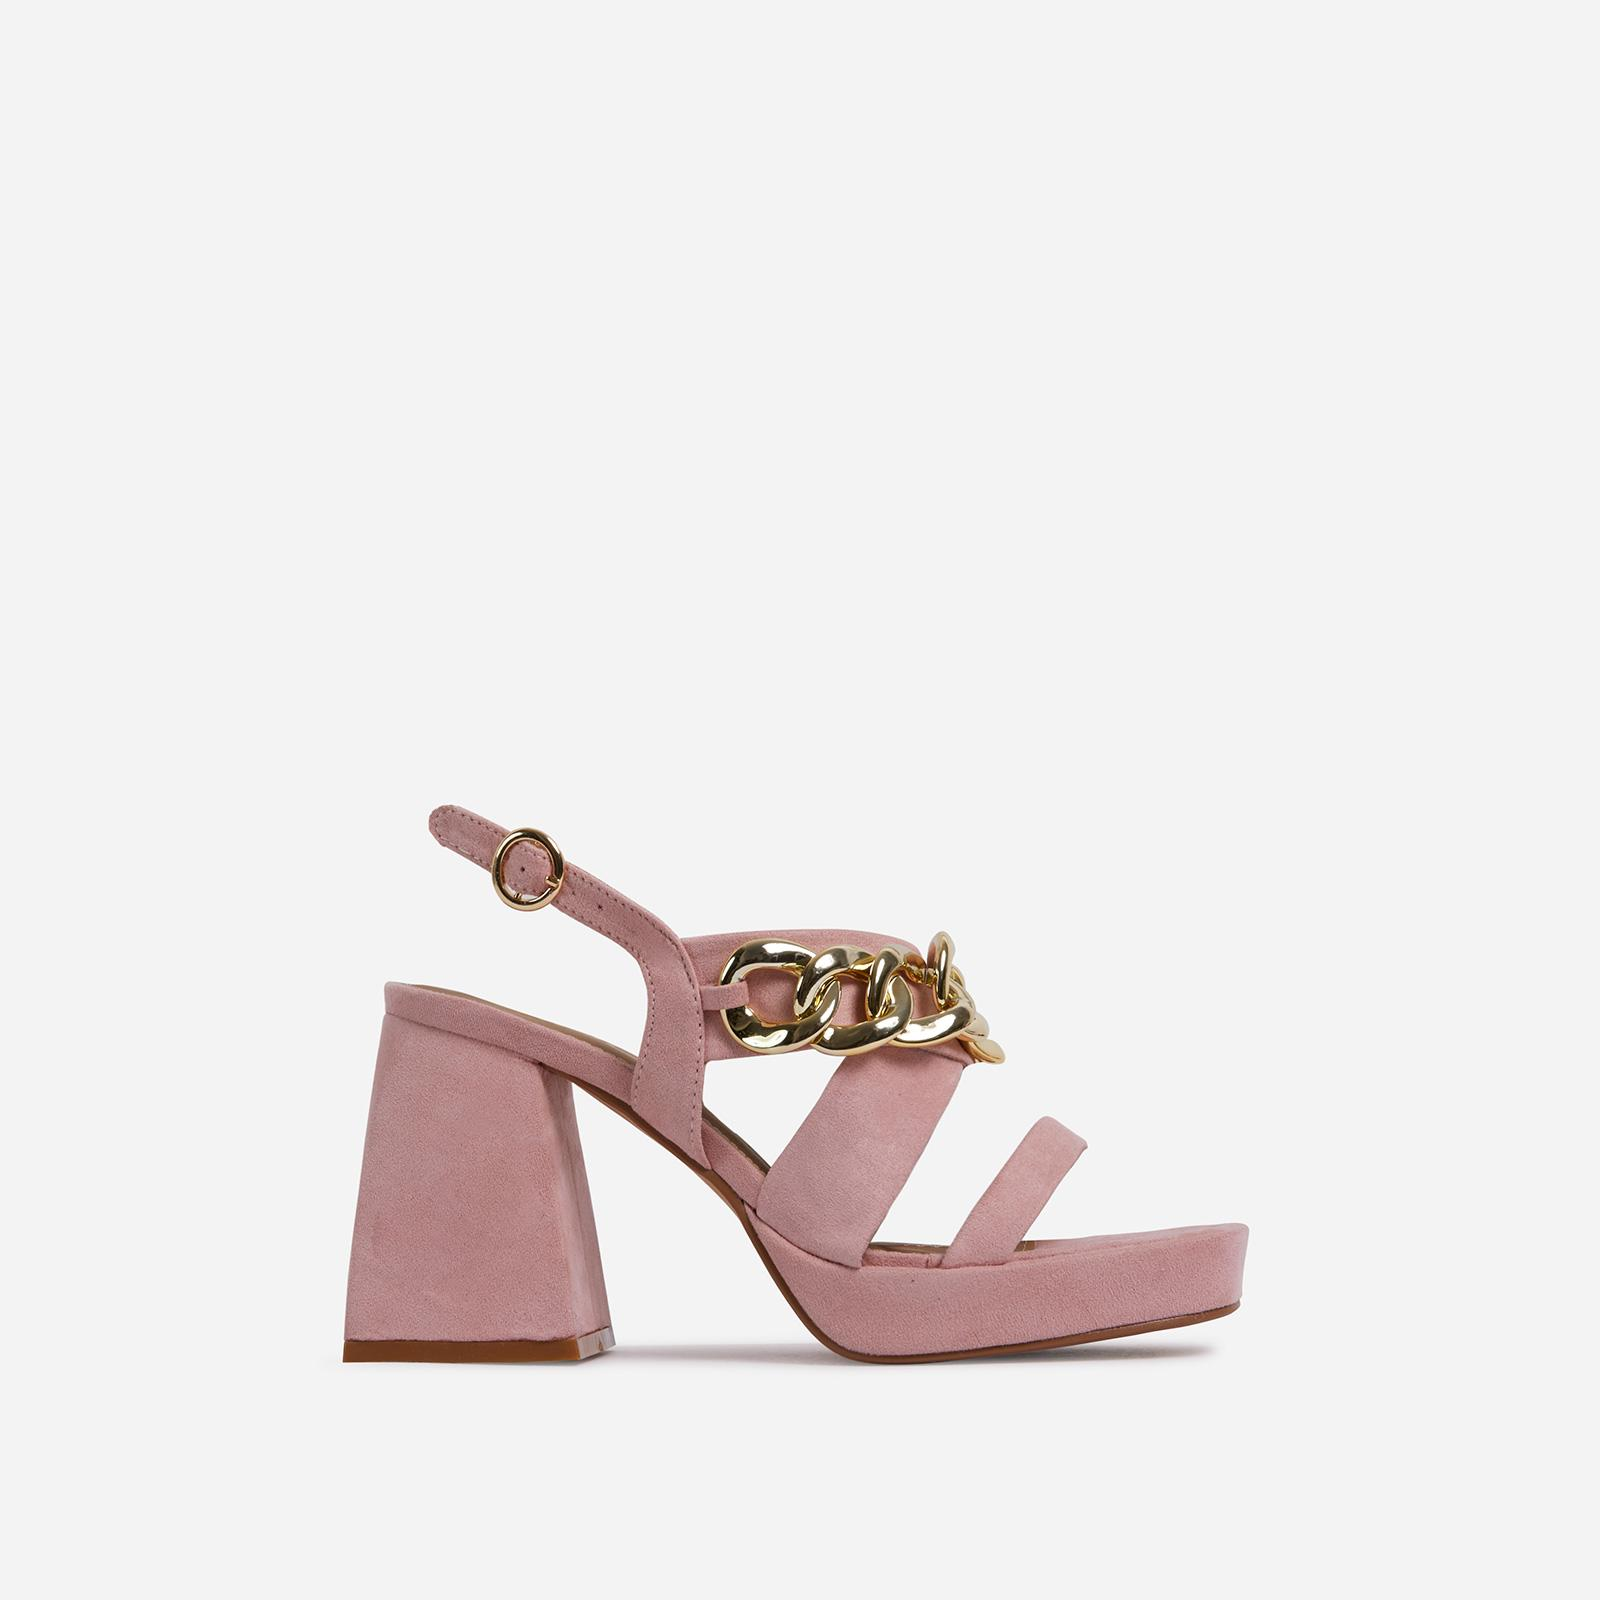 Recharge Chain Detail Platform Flared Block Heel In Pink Faux Suede, Purple